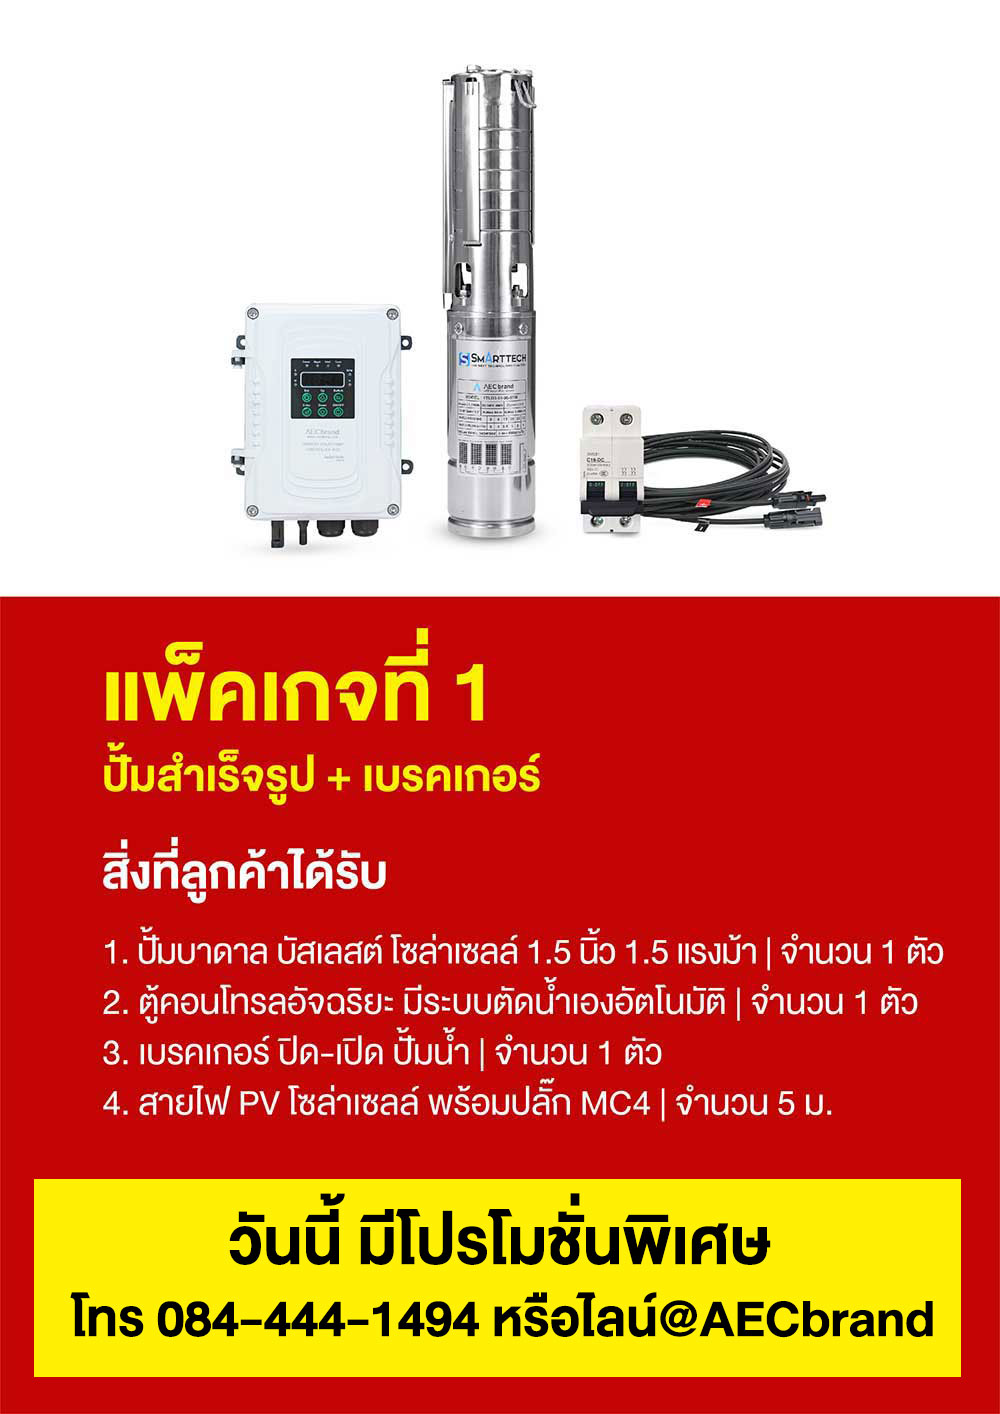 Pro4-submersible2-1Solarcell